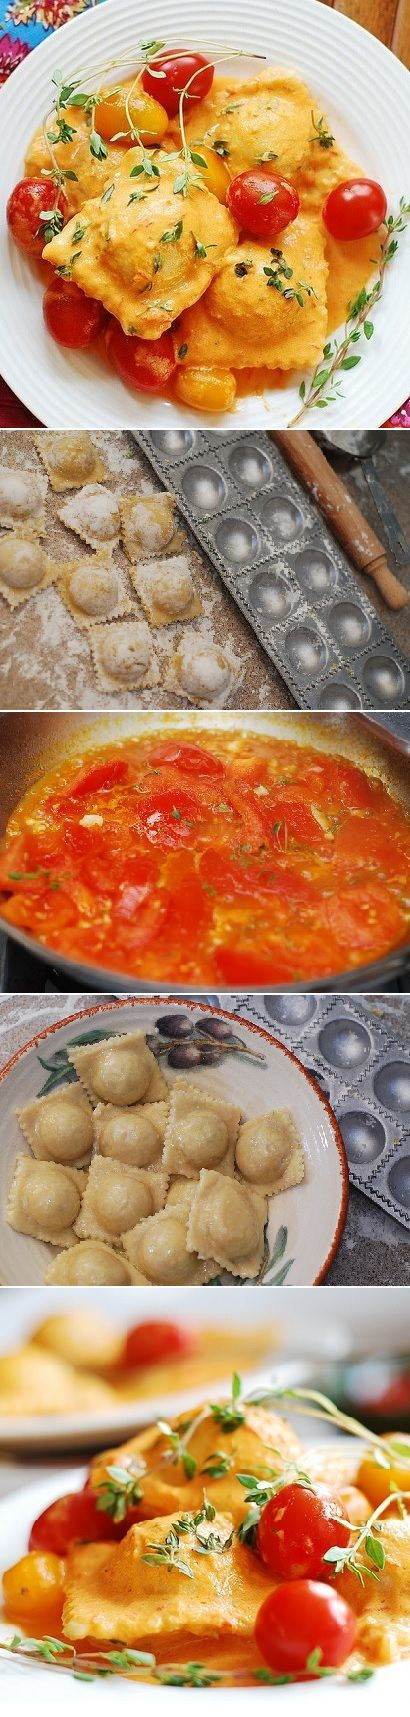 How to make ravioli from scratch, using a ravioli mold: with spinach and ricotta cheese filling, in homemade tomato cream sauce | italian pasta, dinner, comfort food